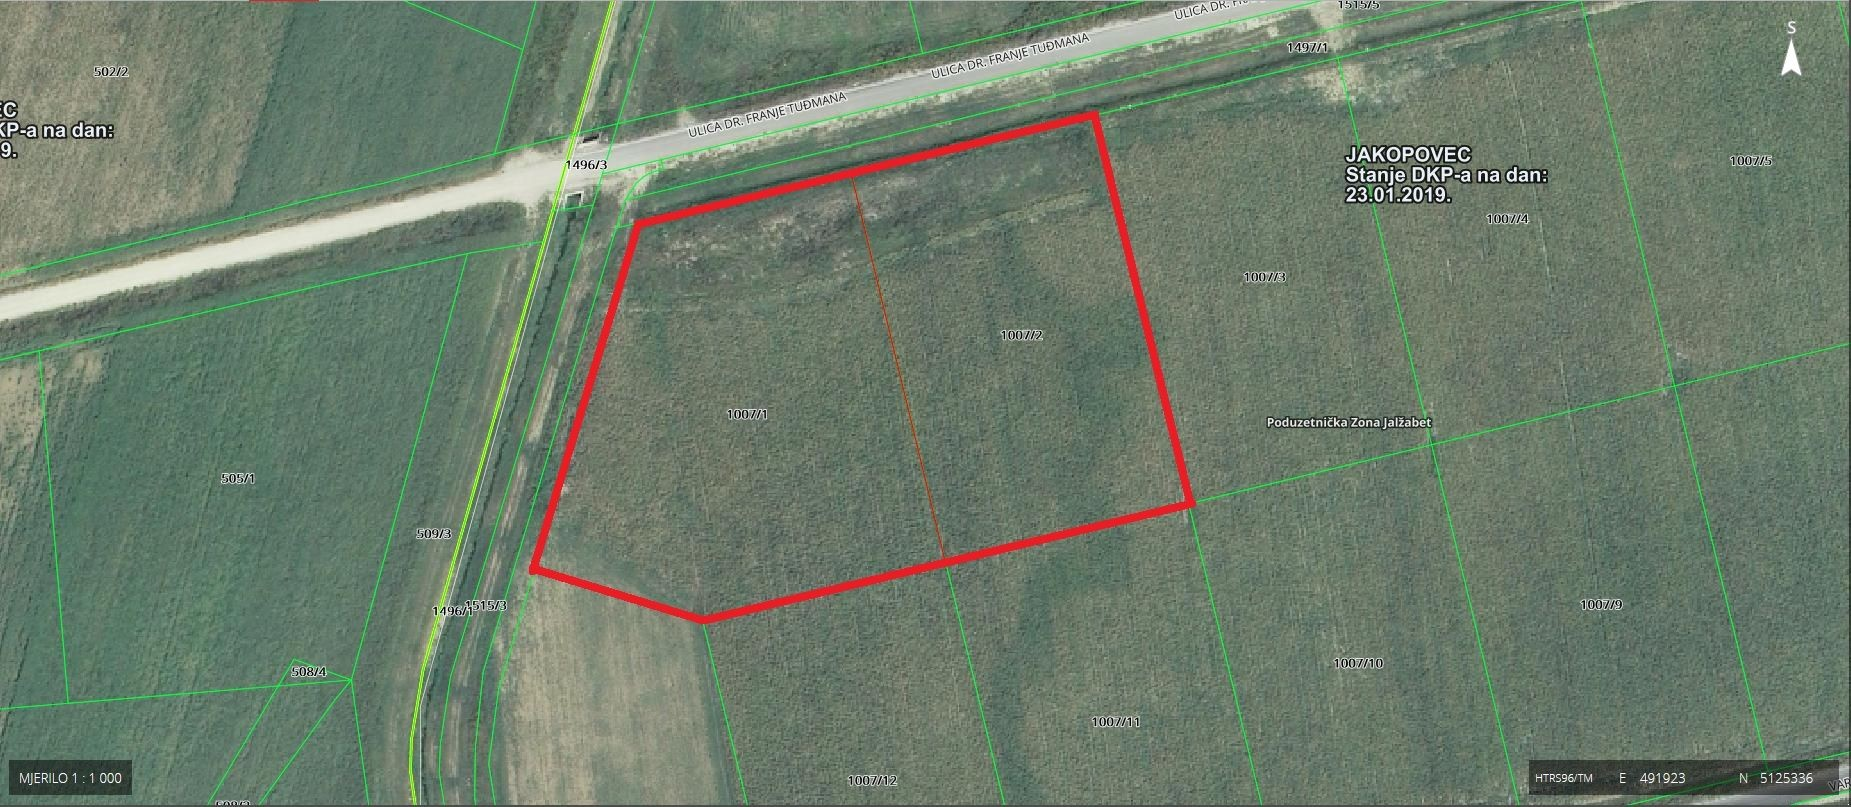 Construction plot for commercial properties, Sale, Jalžabet, Jakopovec